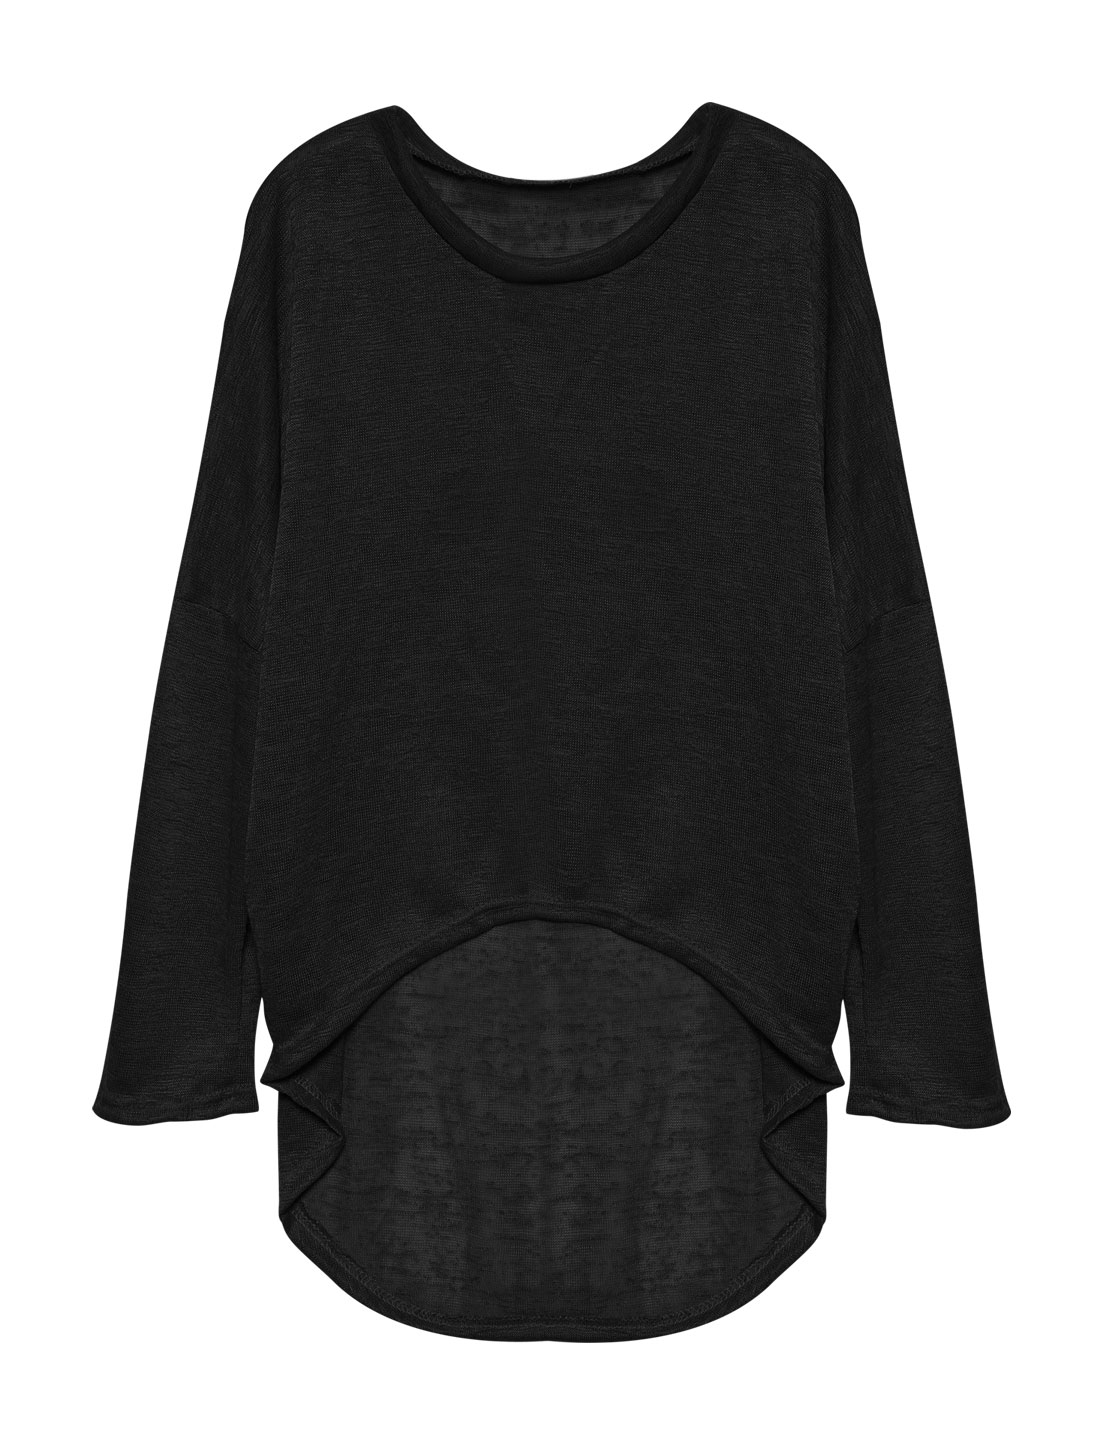 Ladies Hi-Lo See Through Loose Dolman Knit Shirt Black S